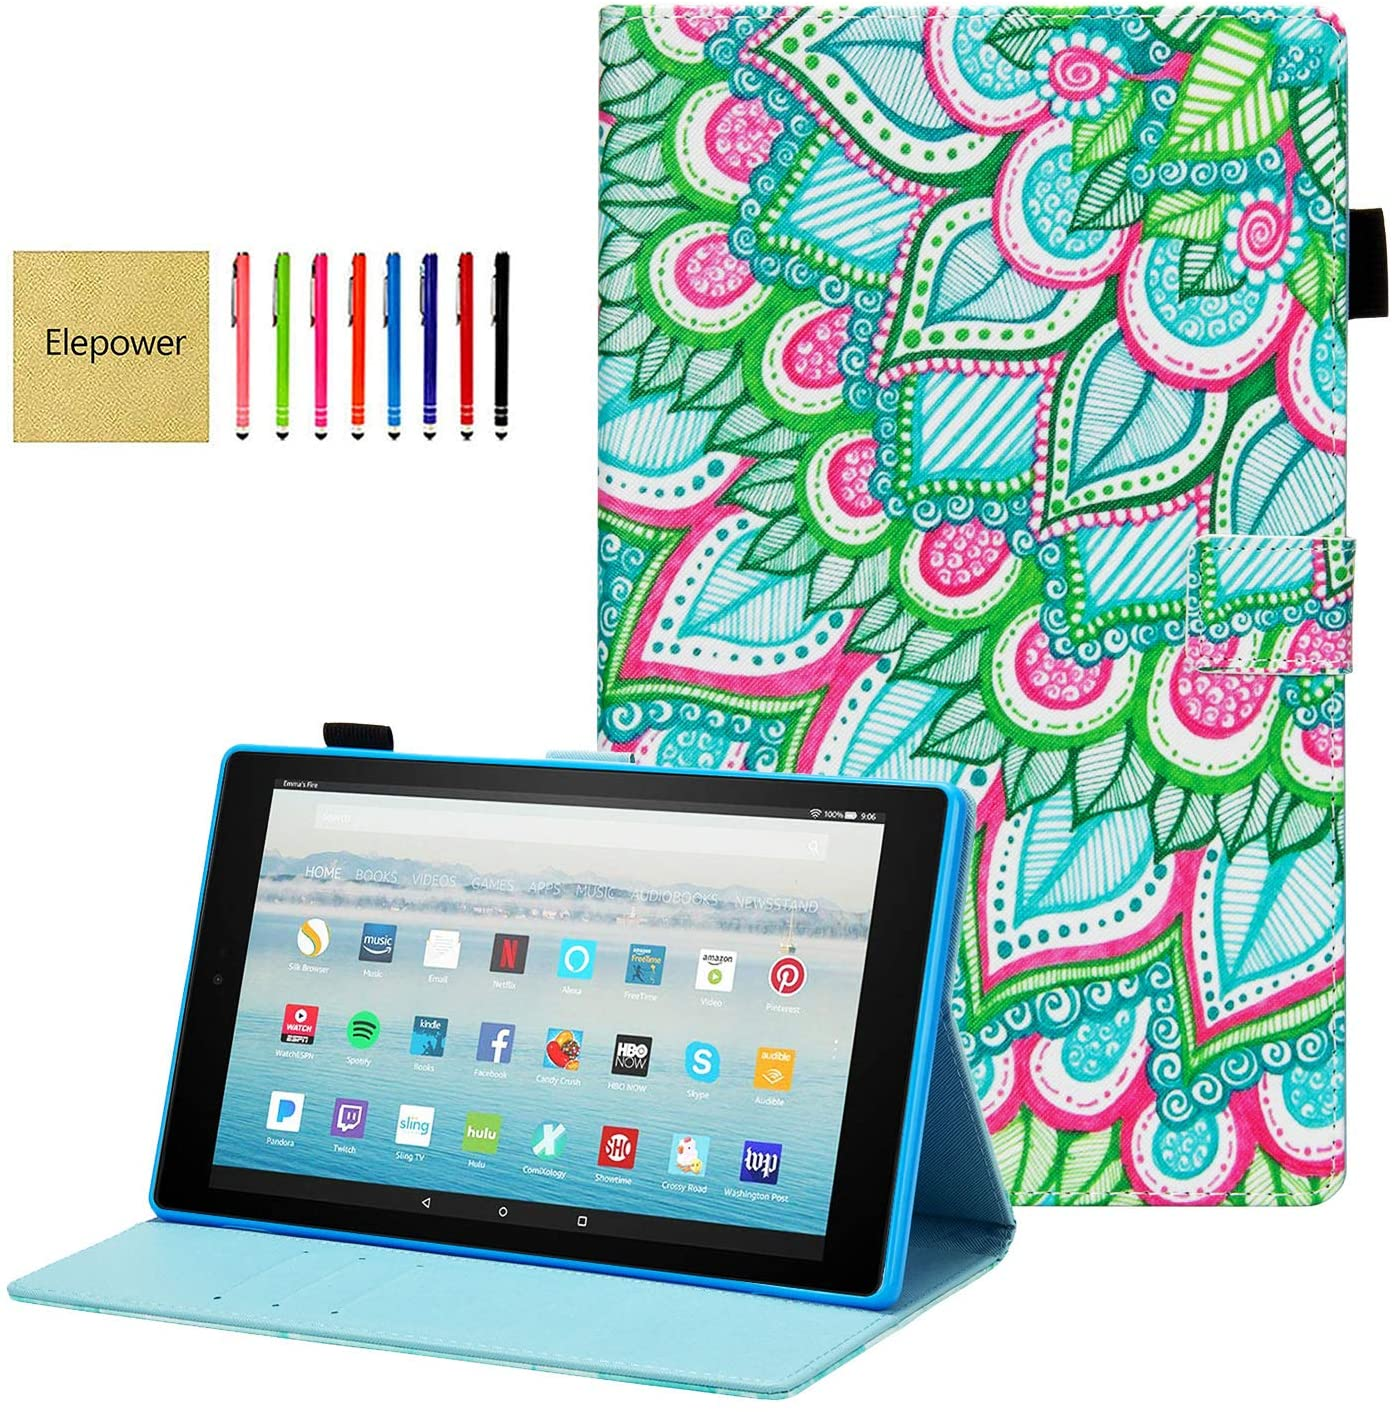 Elepower Folio Case for Fire HD 10 (9th/7th/5th Generation, 2019/2017/2015 Release), Slim Premium PU Leather Smart Stand Cover Auto Wake/Sleep for All-New DHgate Fire 10.1 Inch Tablet, Flower